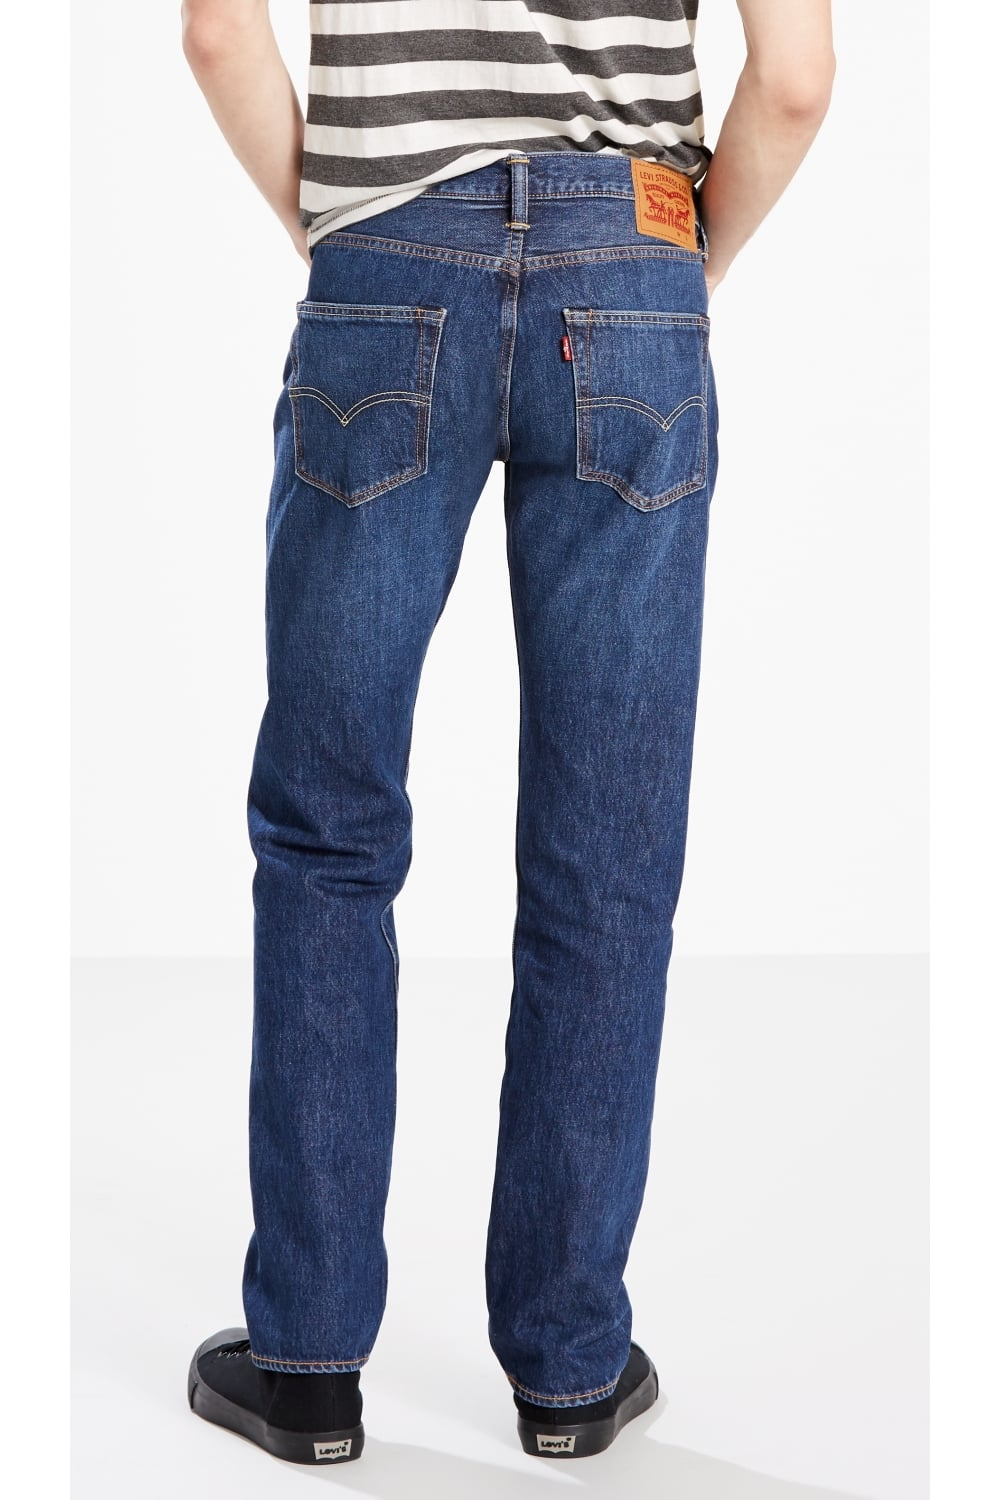 Levi's Fit 501 Original subway Station Stretch' Jeans 'warp xpU1qx